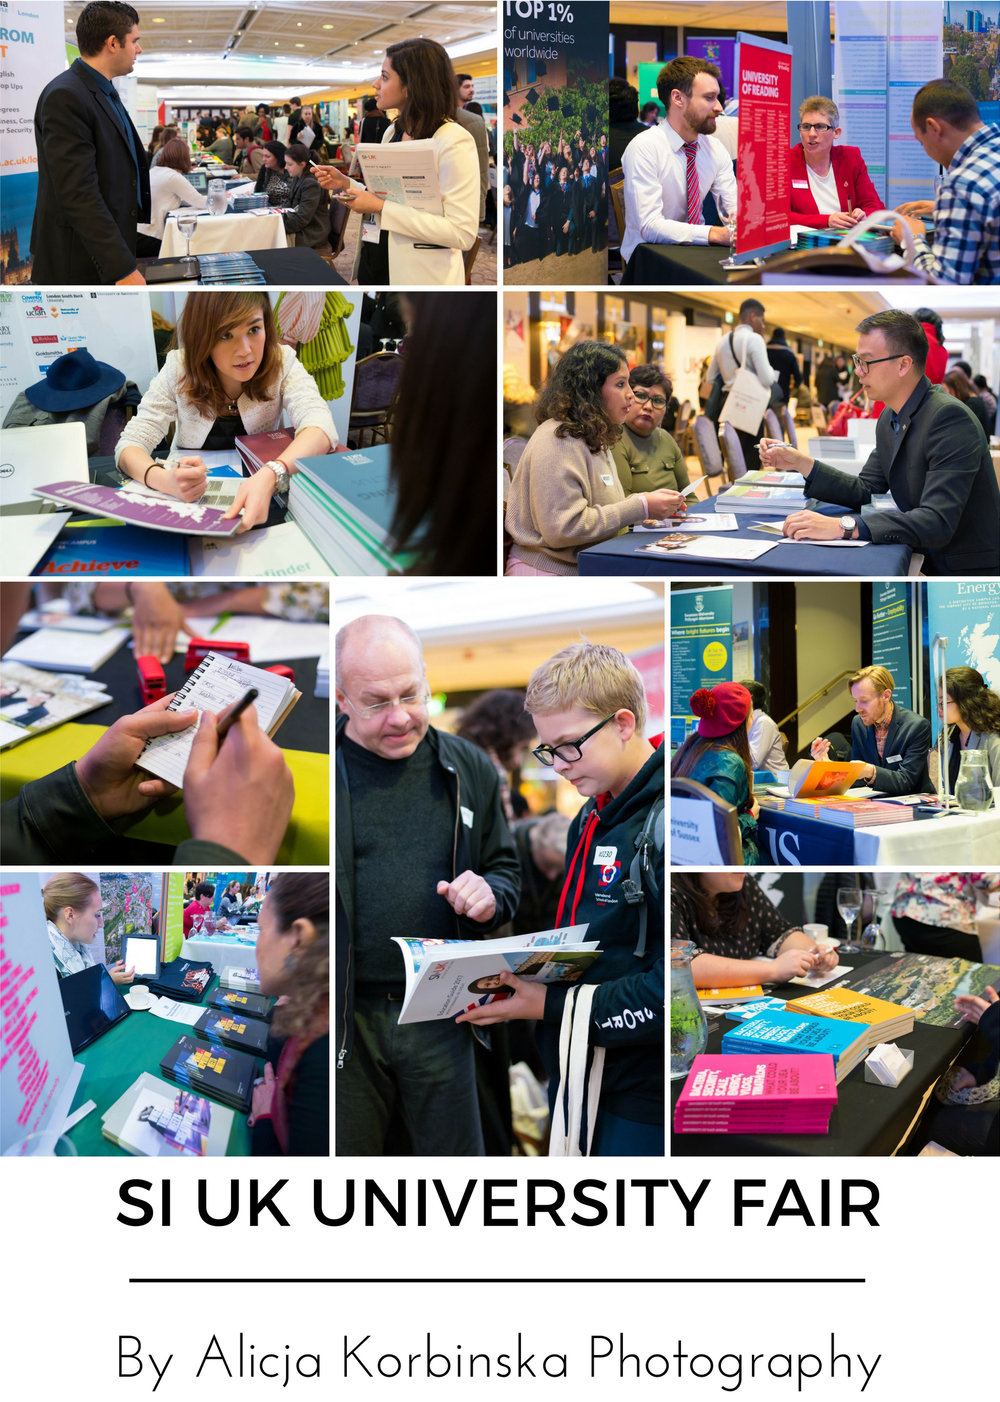 Largest UK's University Fair for international students in London by SI-UK. Universities and students all working hard.